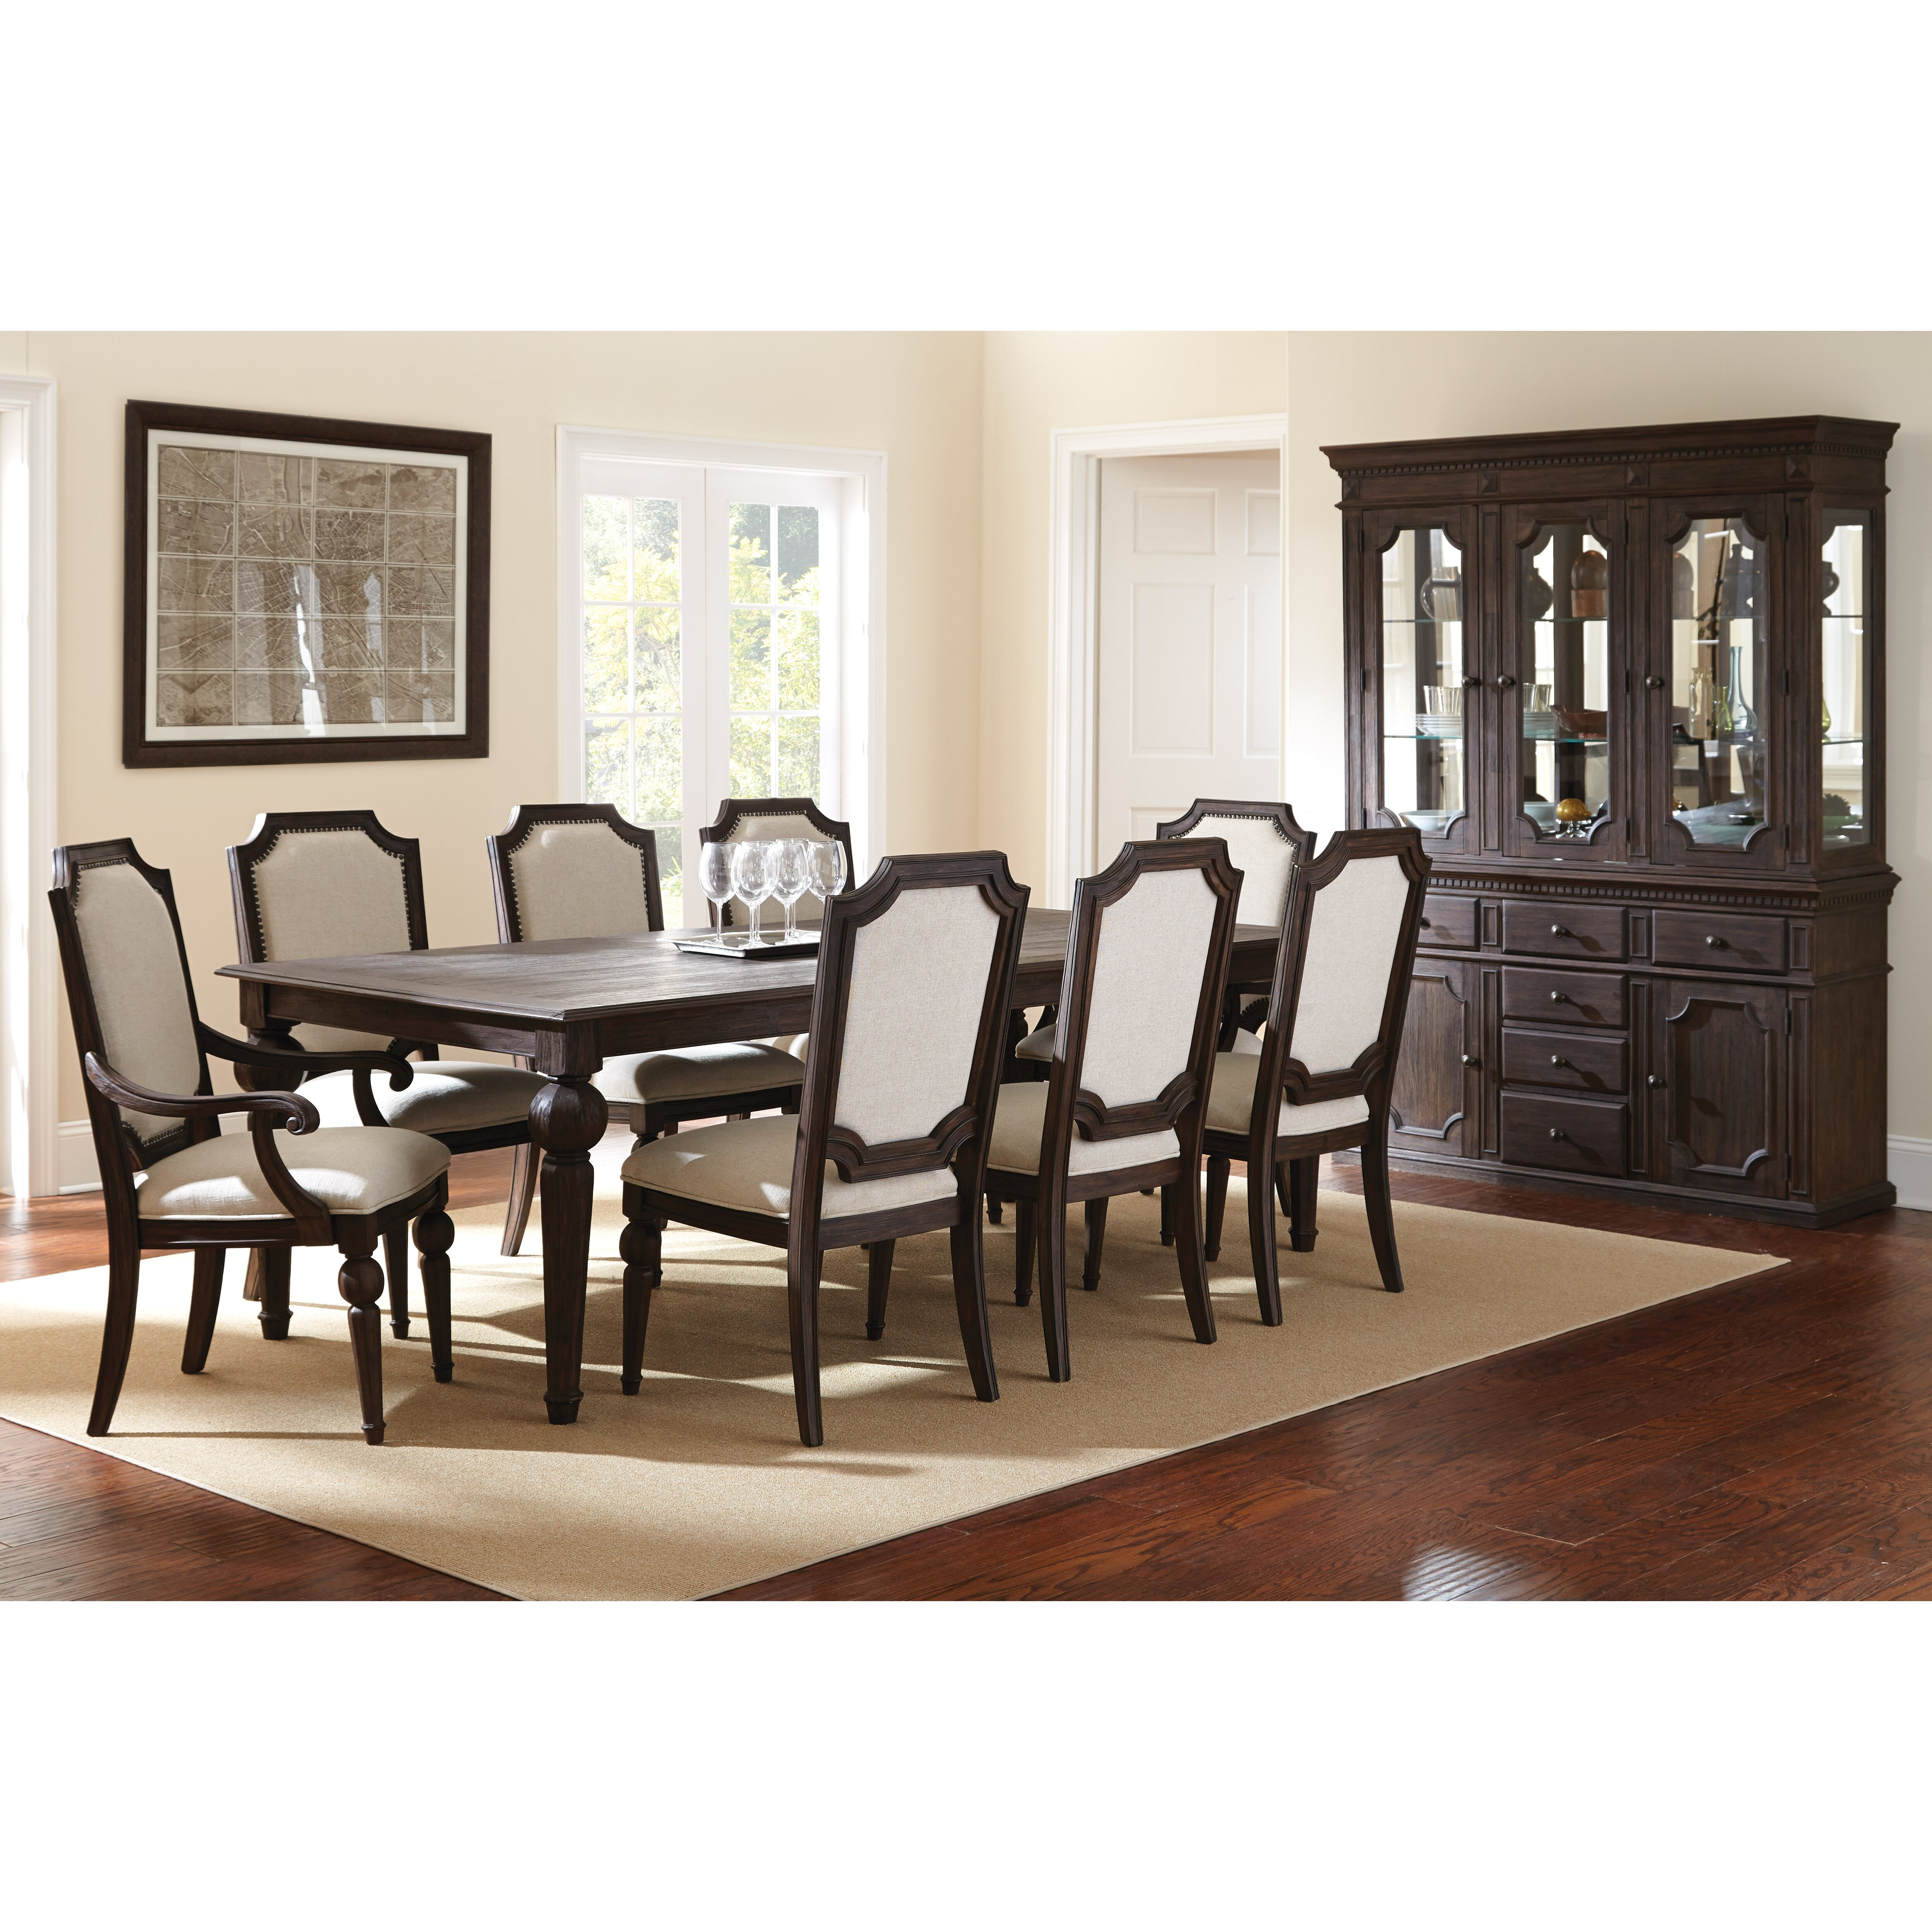 Canora grey shadwell 11 piece dining set wayfair for Dining room tables 11 piece